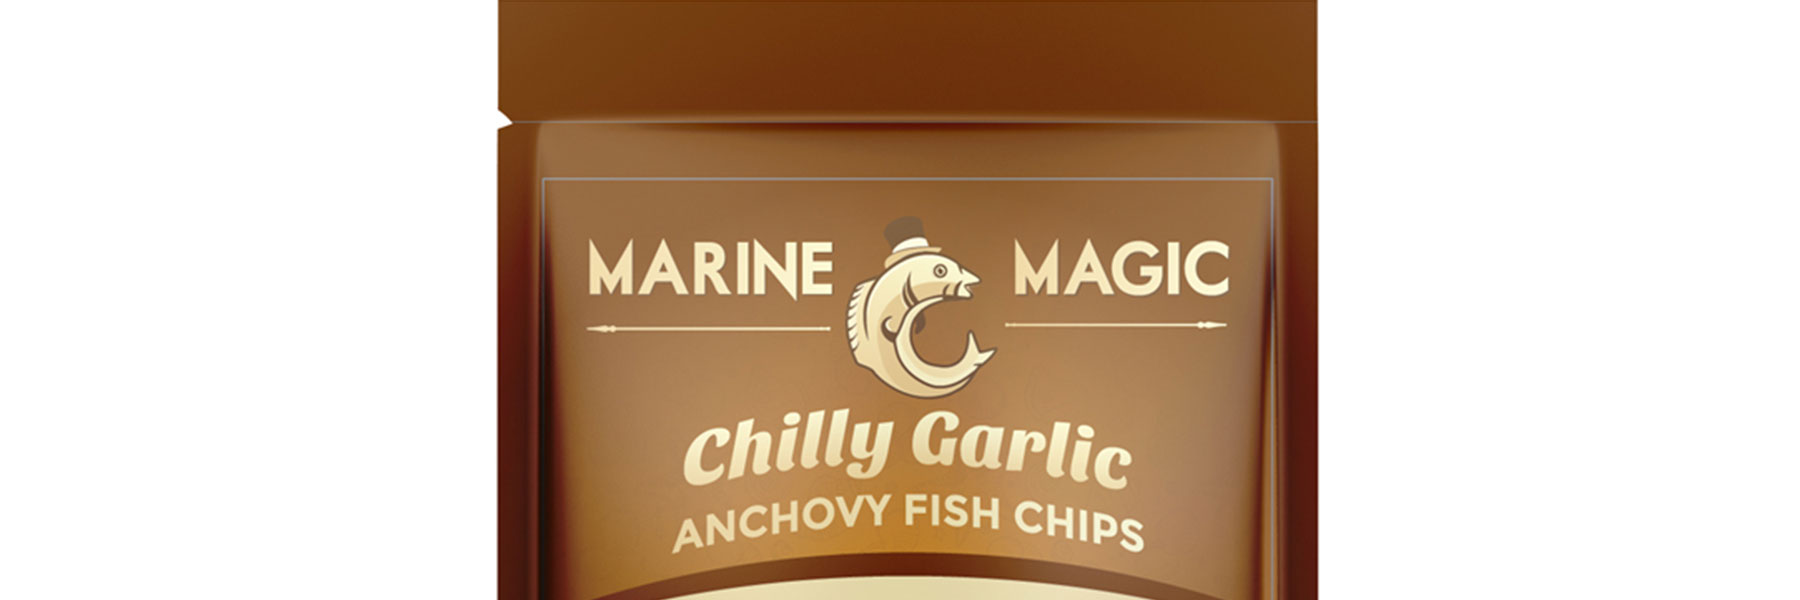 Marine Magic